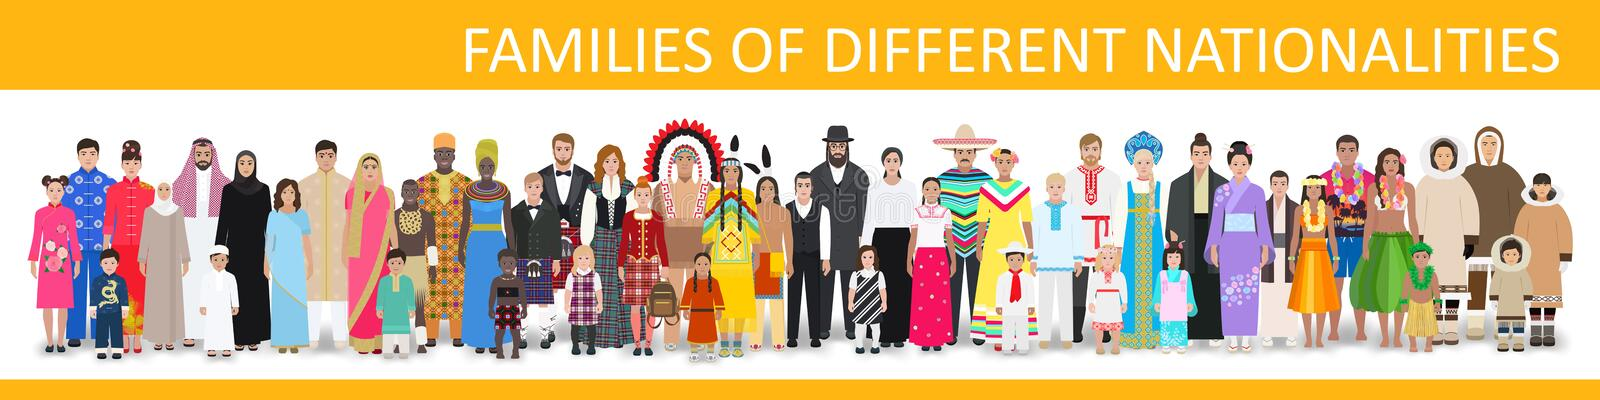 Families of different nationalities, vector illustration royalty free illustration